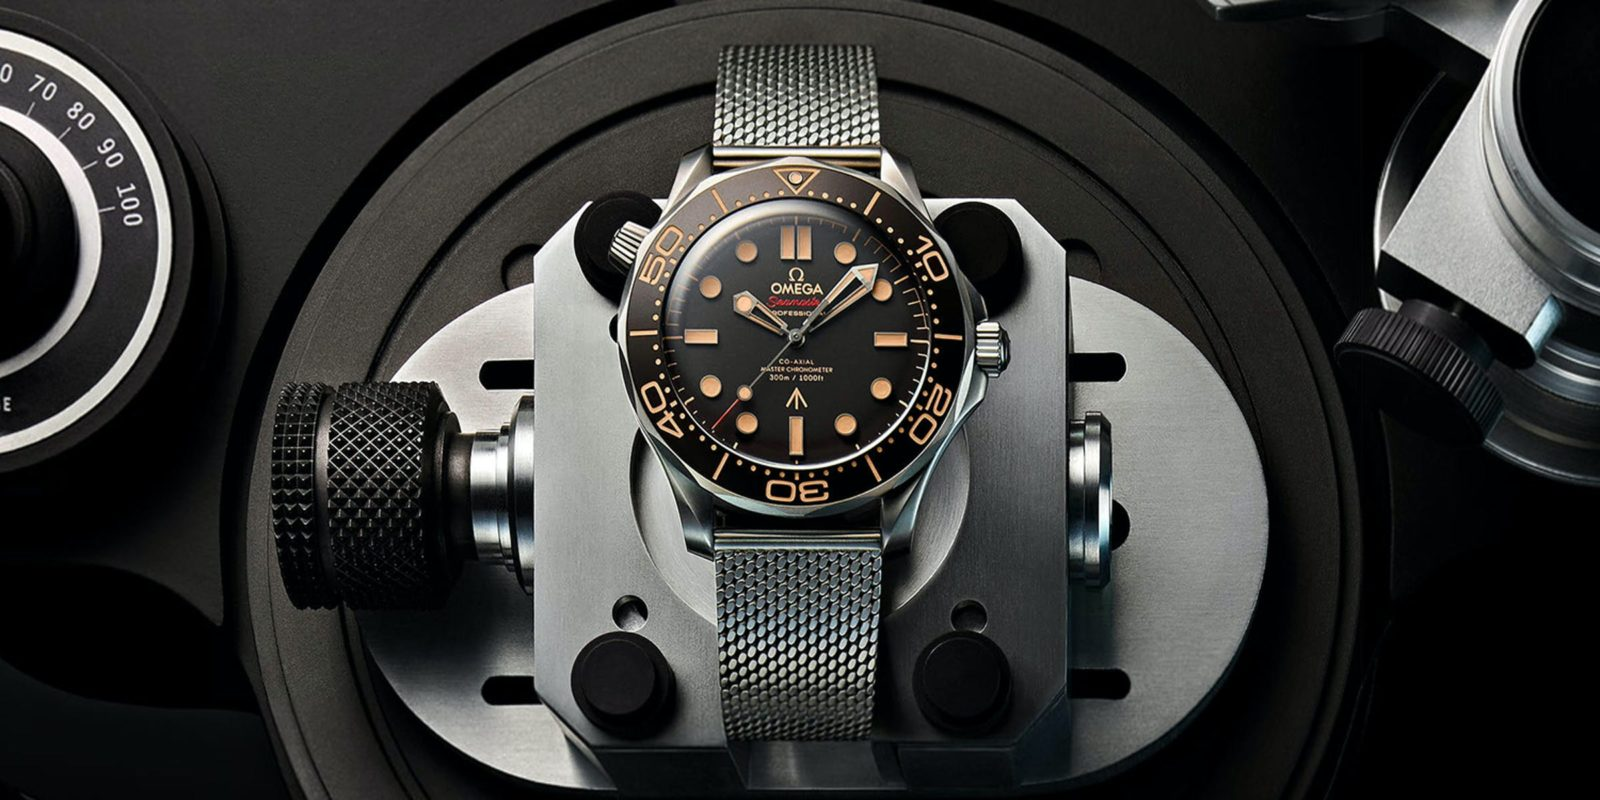 Up-close with Omega's new Seamaster Diver 300M, the new Bond watch